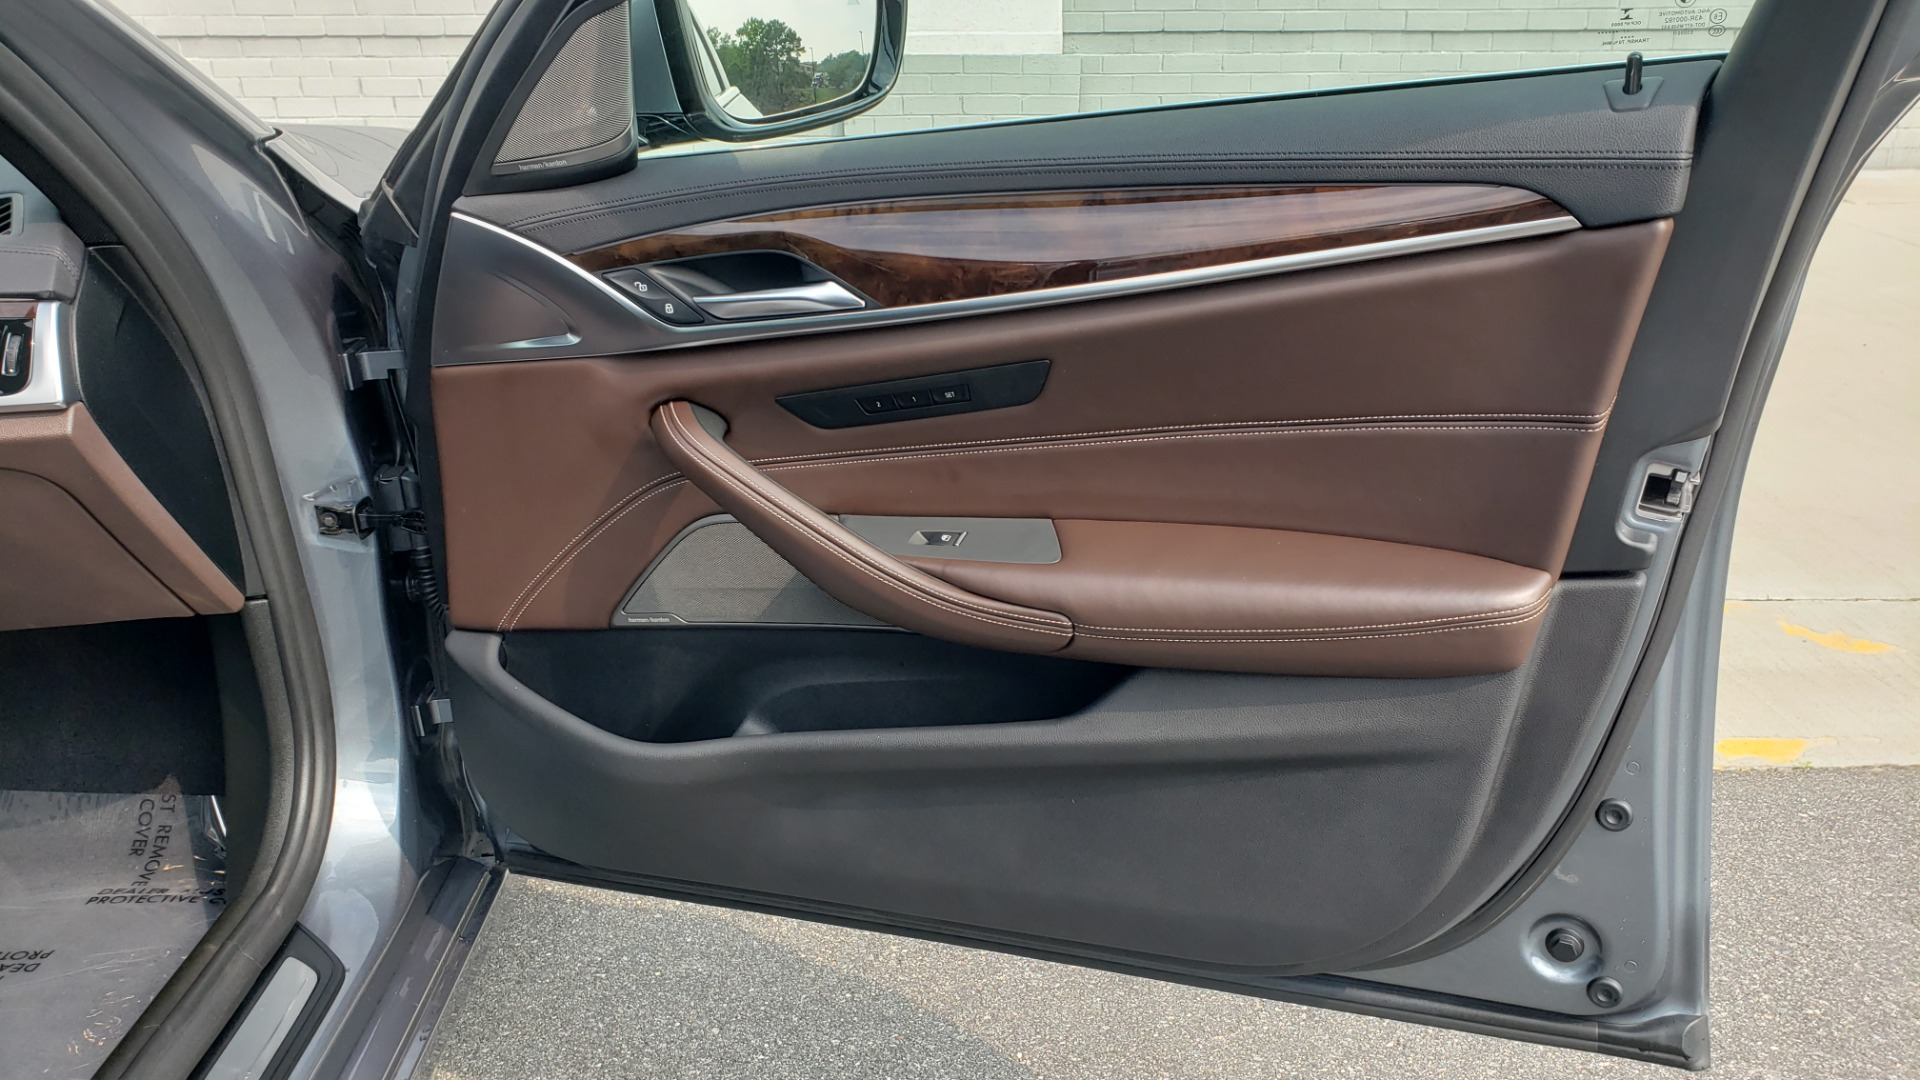 Used 2018 BMW 5 SERIES 540I XDRIVE PREMIUM / EXECUTIVE / LUXURY / H/K SND / REMOTE CONTROL PARKING for sale $40,995 at Formula Imports in Charlotte NC 28227 62